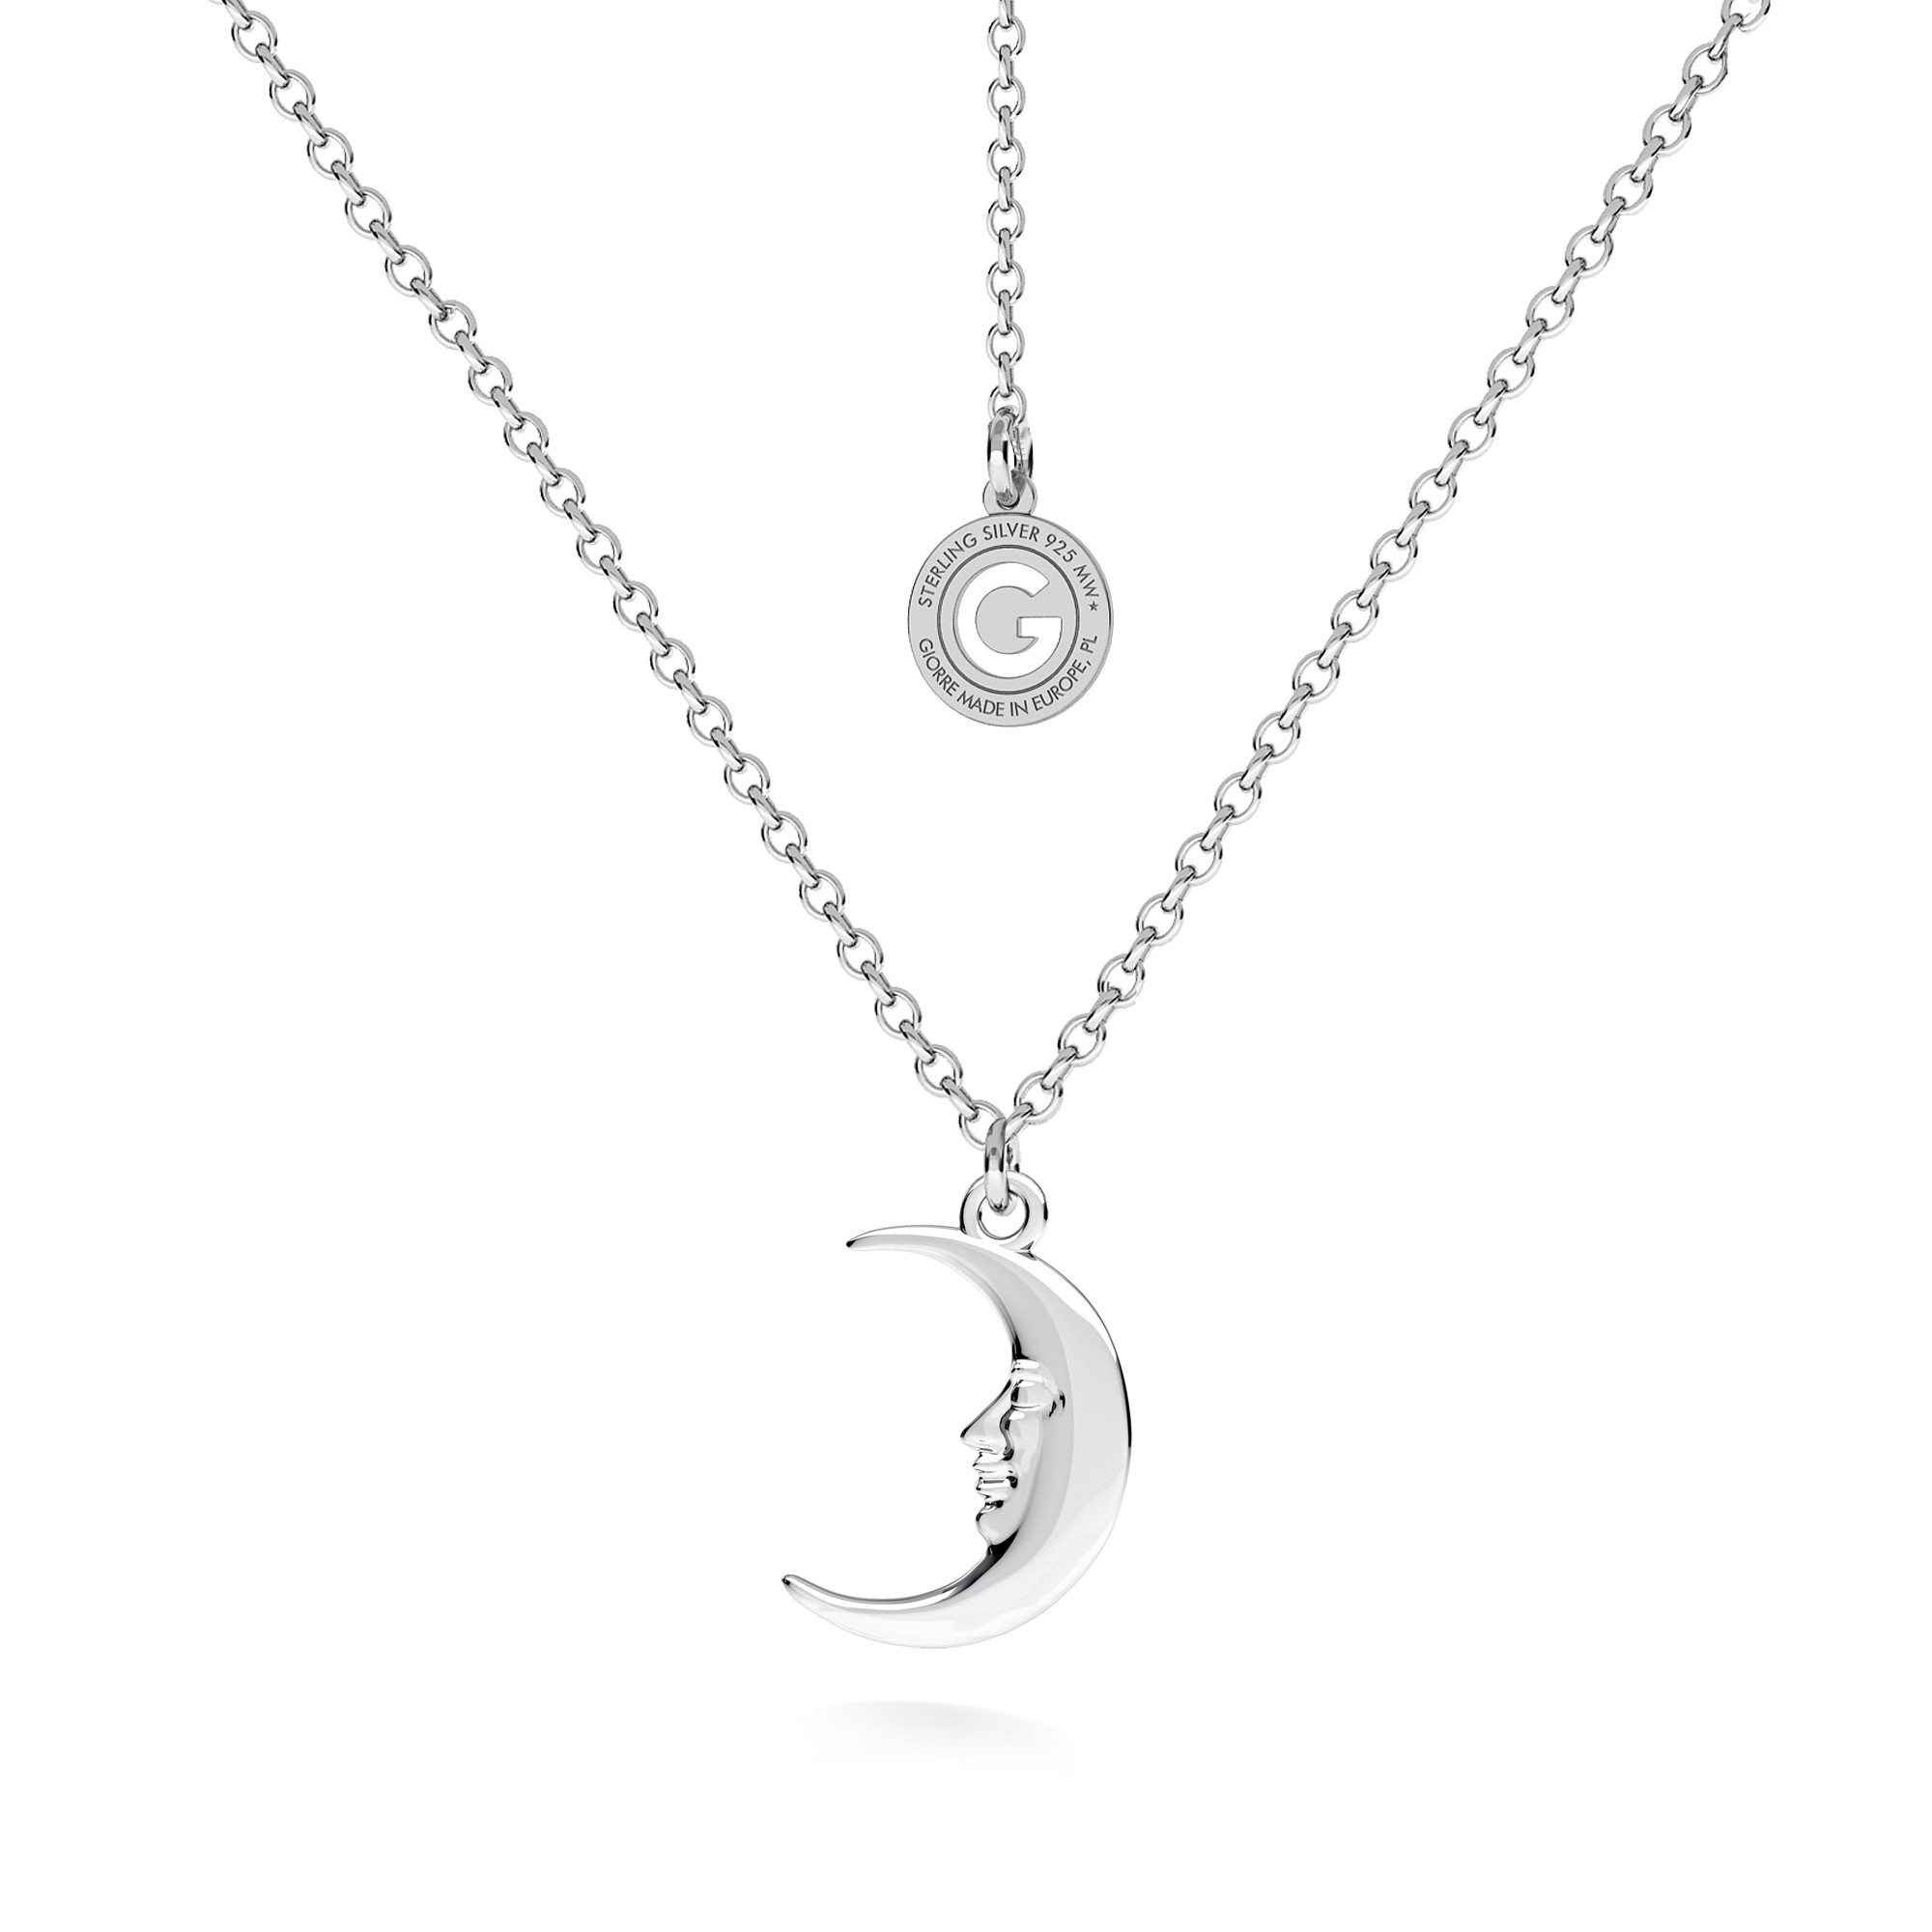 Kettlebell necklace sterling silver 925